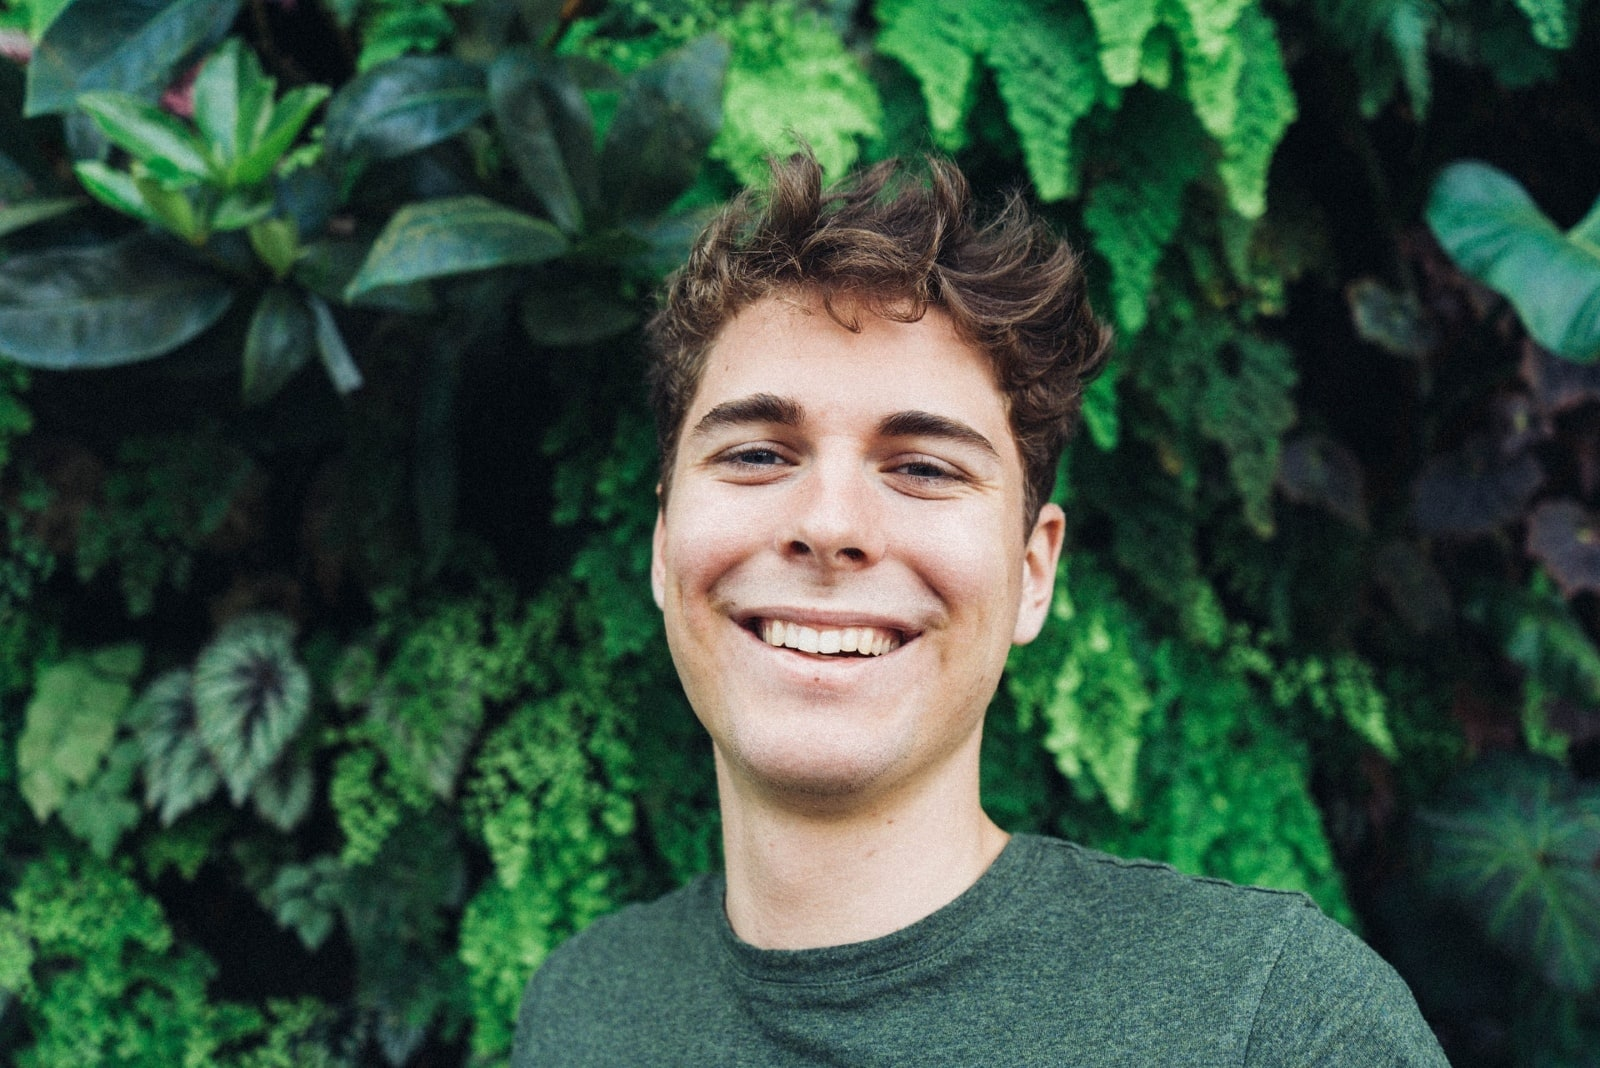 man smiling while standing near plants